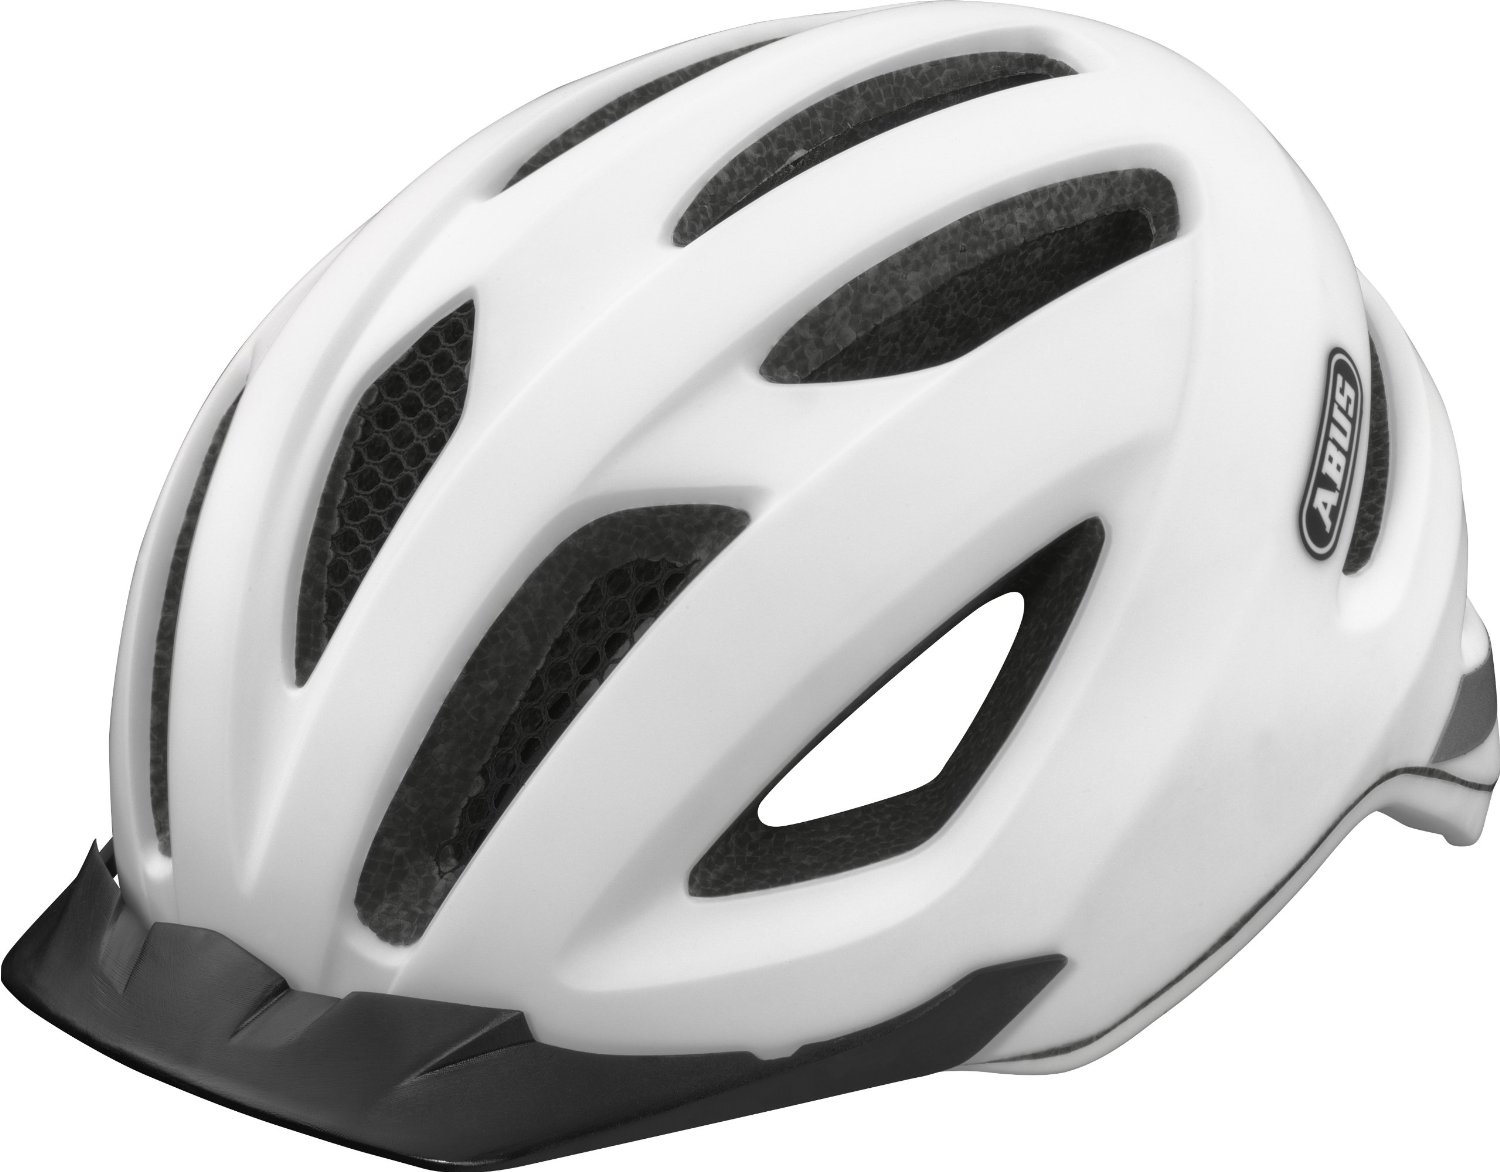 White Abus Bicycle Helmets